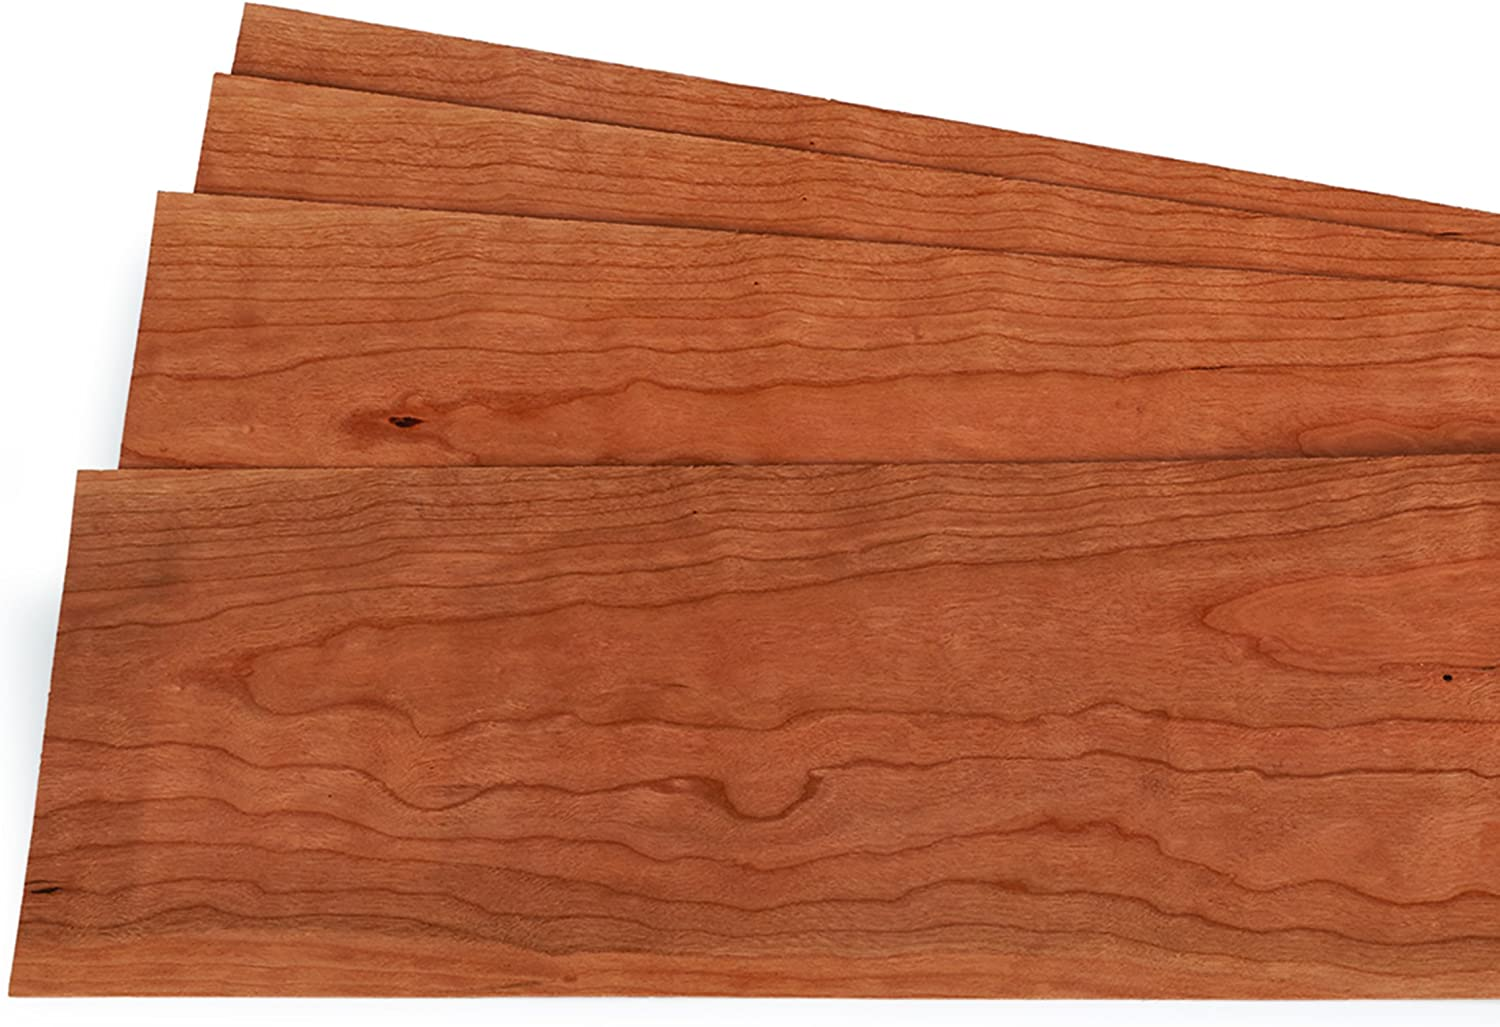 Cherry Veneer Pack of 3 Sq. Ft 4-1 Max 68% OFF 24'' 2'' 1 7-1 x Max 49% OFF to